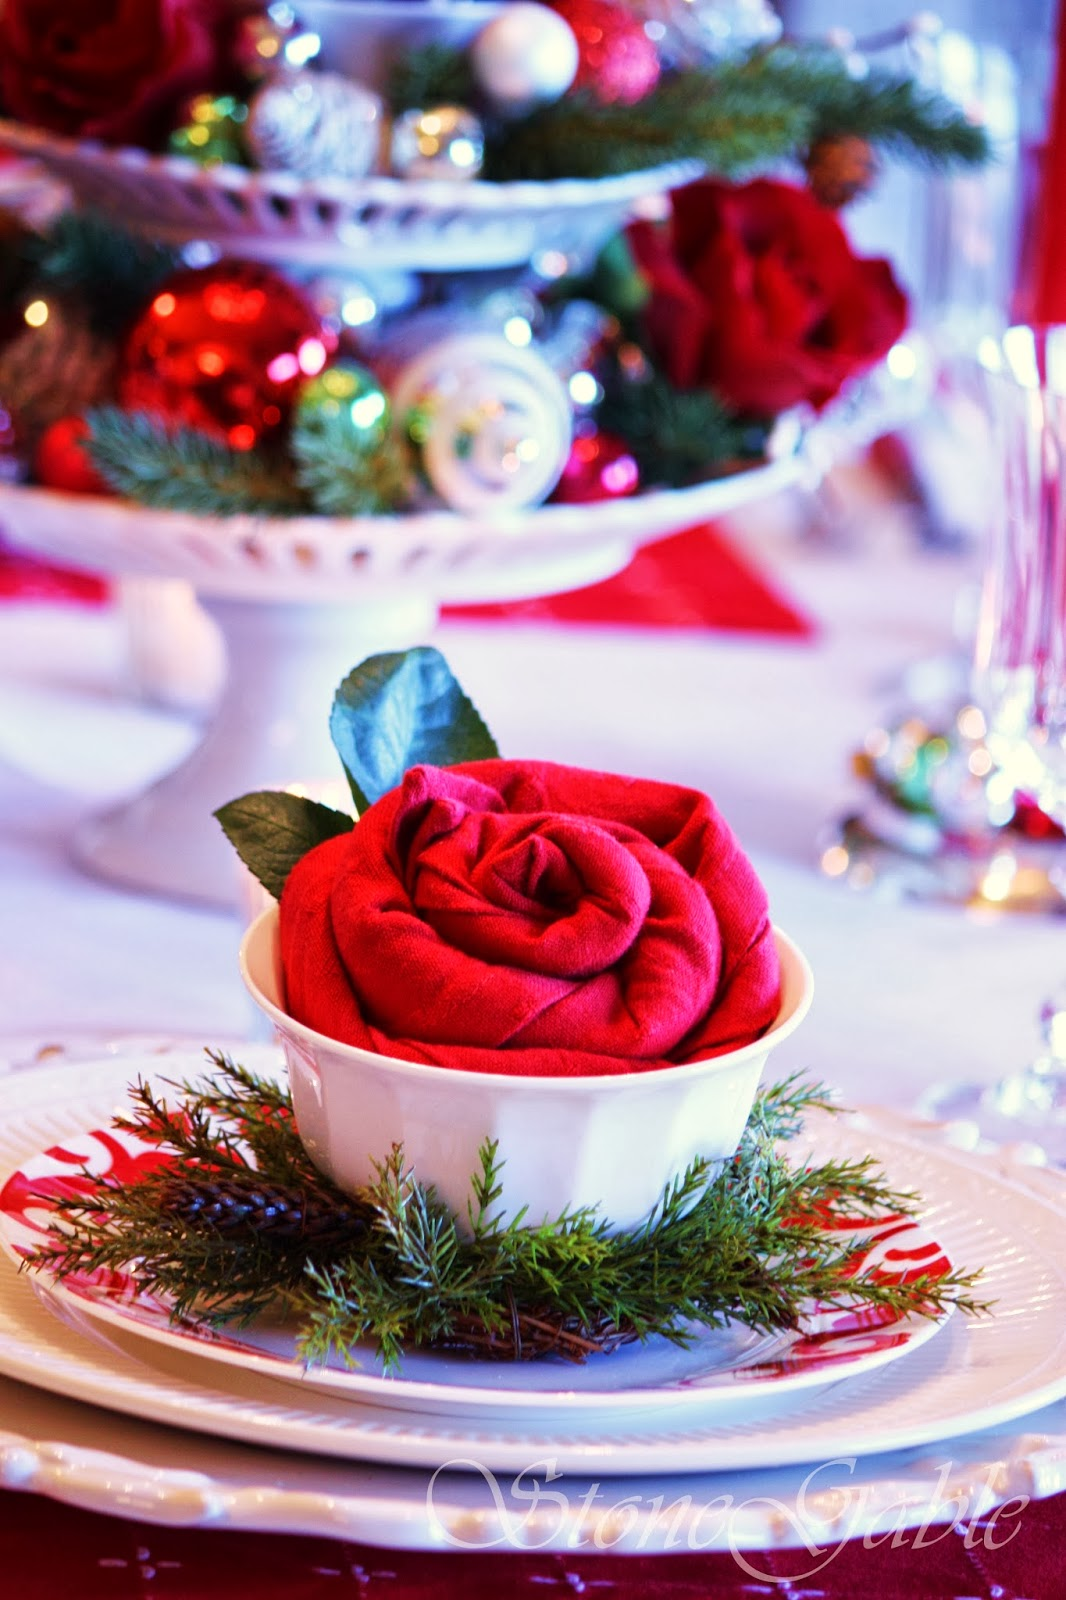 Christmas Dinner Party Ideas Part - 34: Iu0027m Sure Many Of You Have Really Wonderful Seasoned Tips Too! So Join In U2026.  Please Share Your Best Dinner Party Ideas And Tips With Us As A Comment!